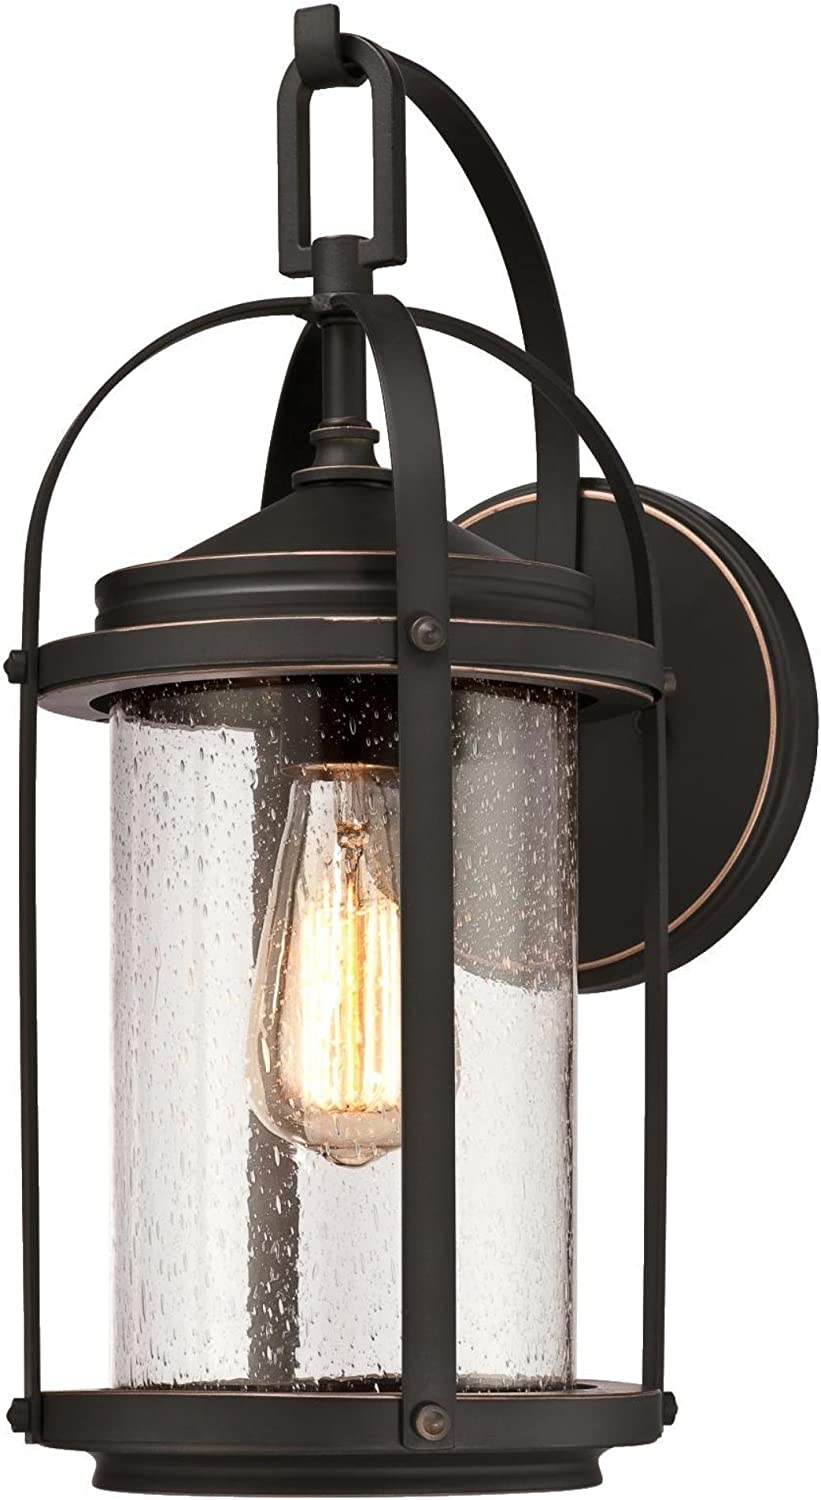 Westinghouse Lighting 6339300 Grandview One Light Outdoor Wall Fixture Oil Rubbed Bronze Finish With Highlights And Clear Seeded Glass Amazon Com